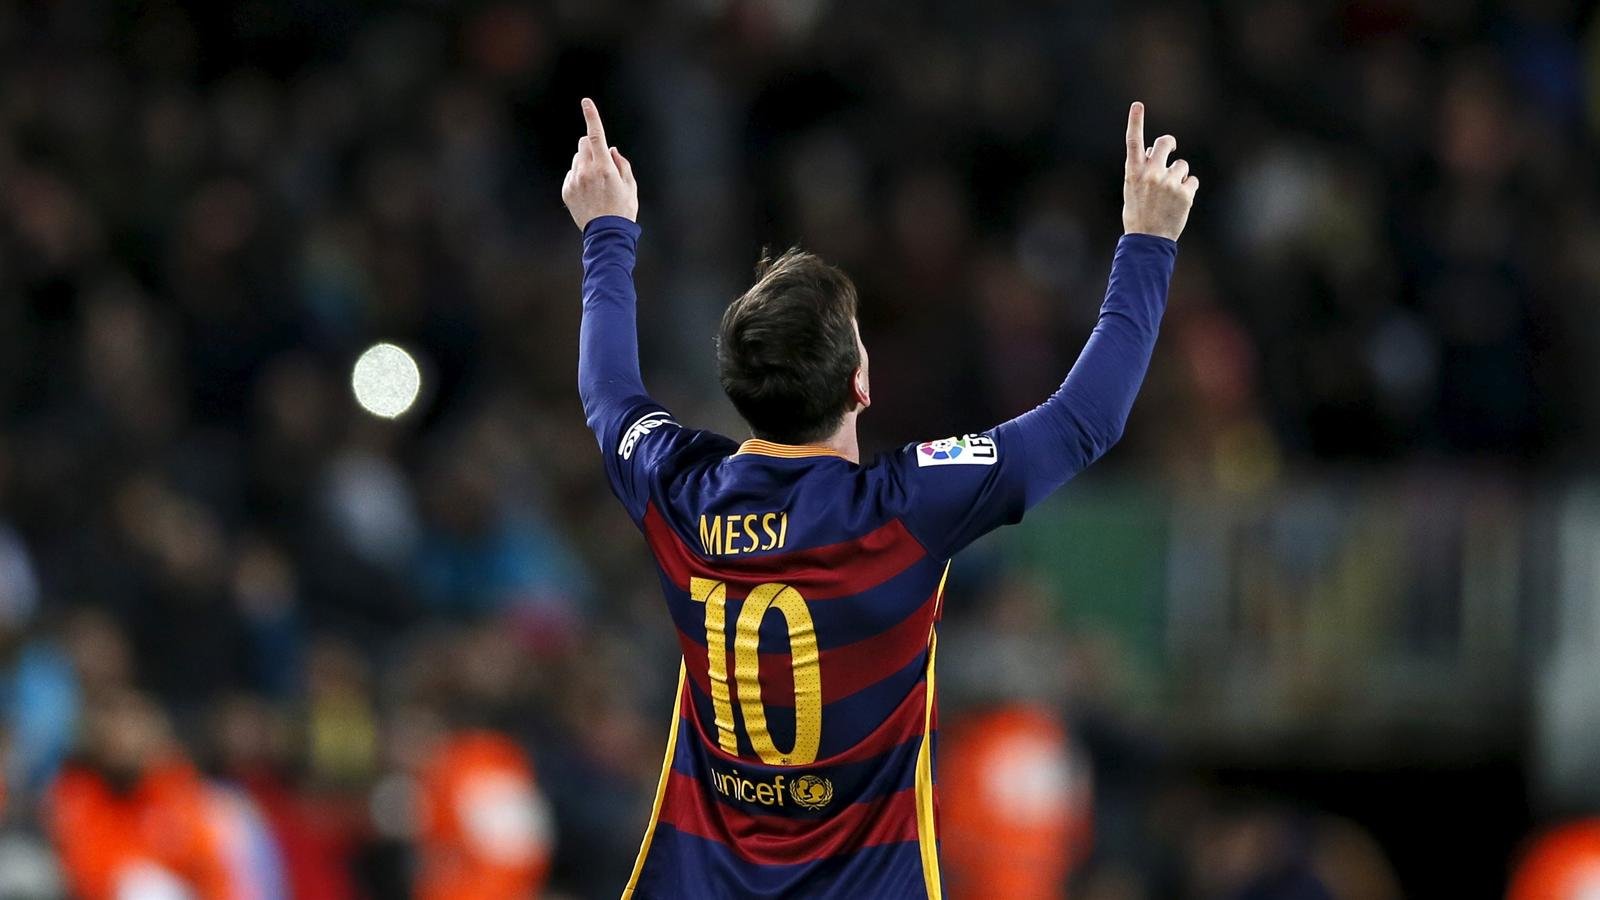 'He's a miracle from God': The greatest ever quotes about Lionel Messi - Liga 2015-2016 ...